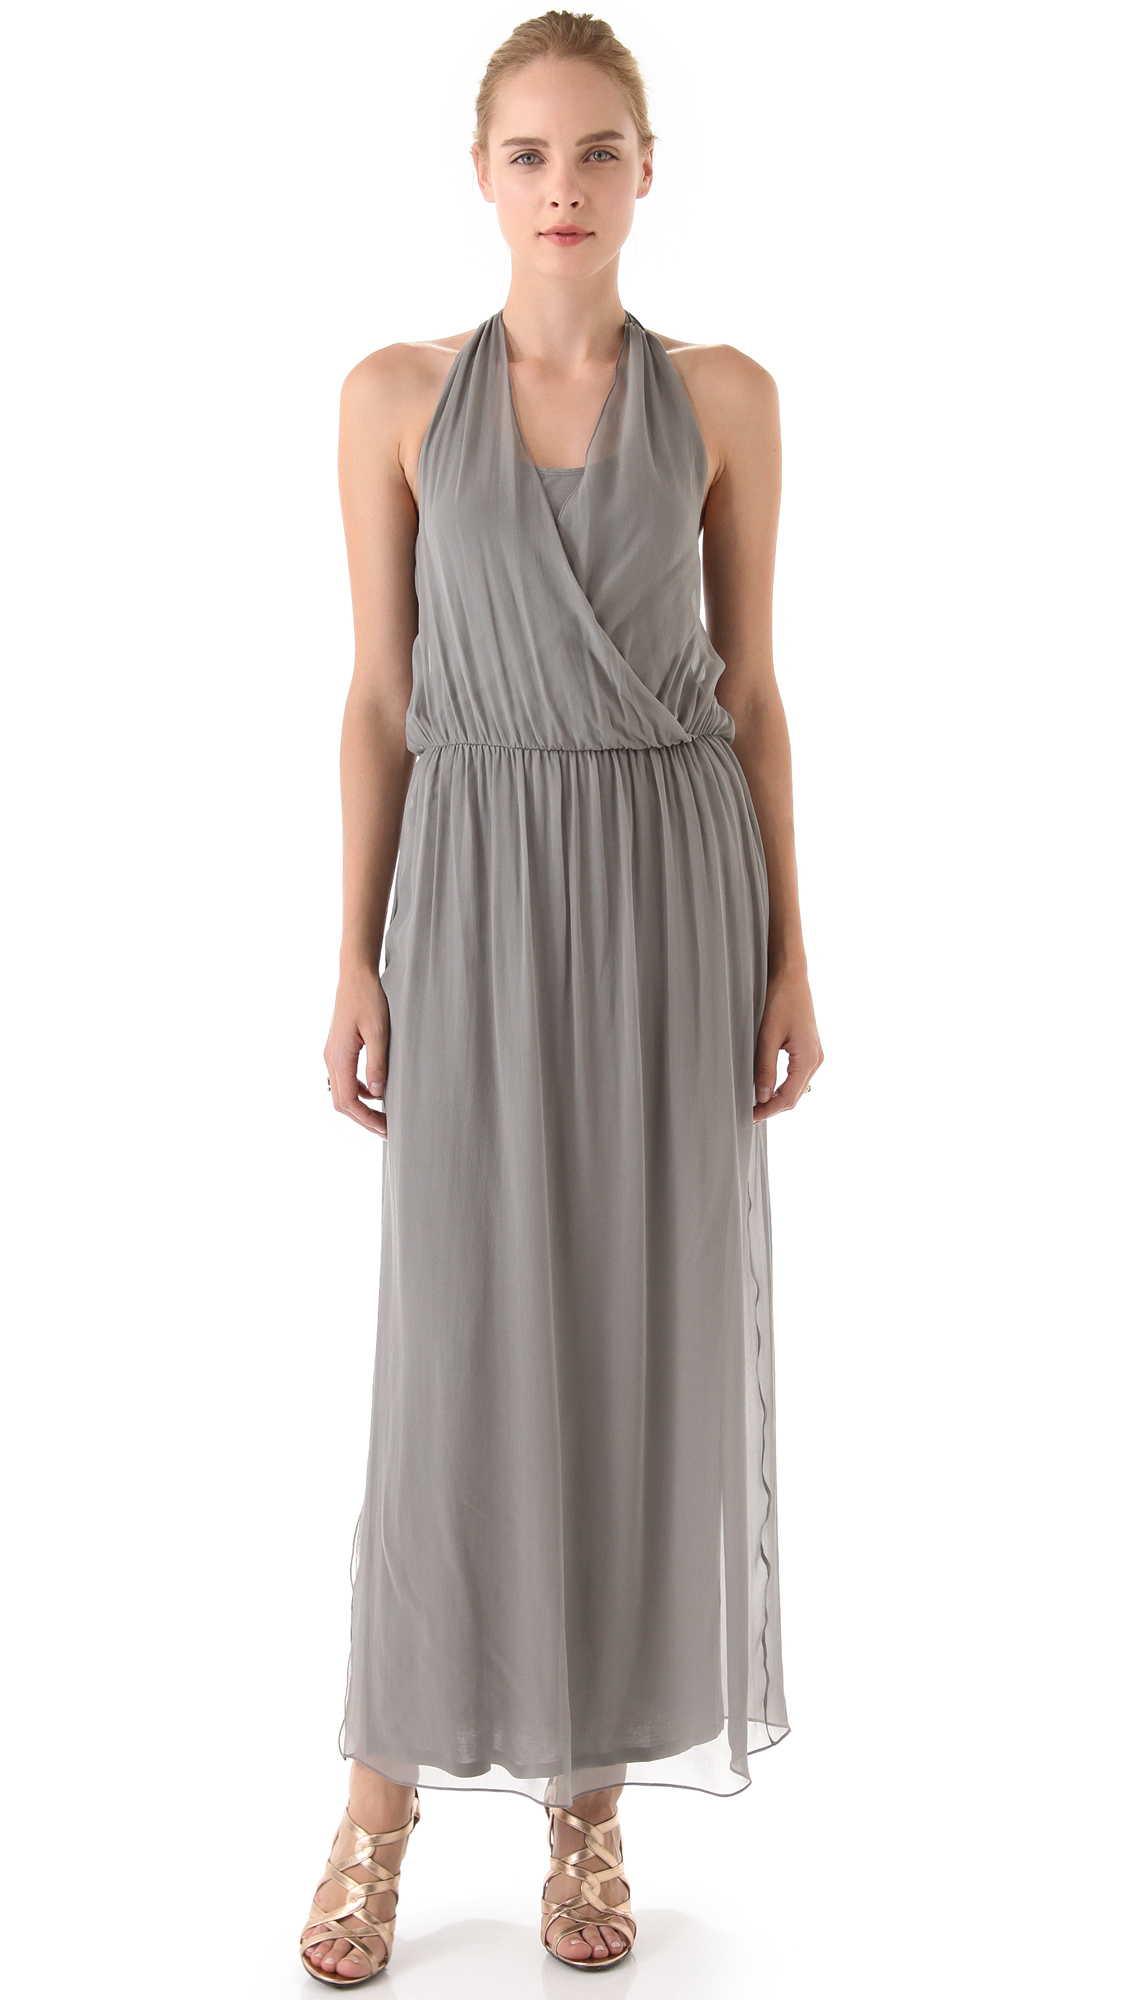 Alice olivia wrap front maxi dress in gray grey lyst